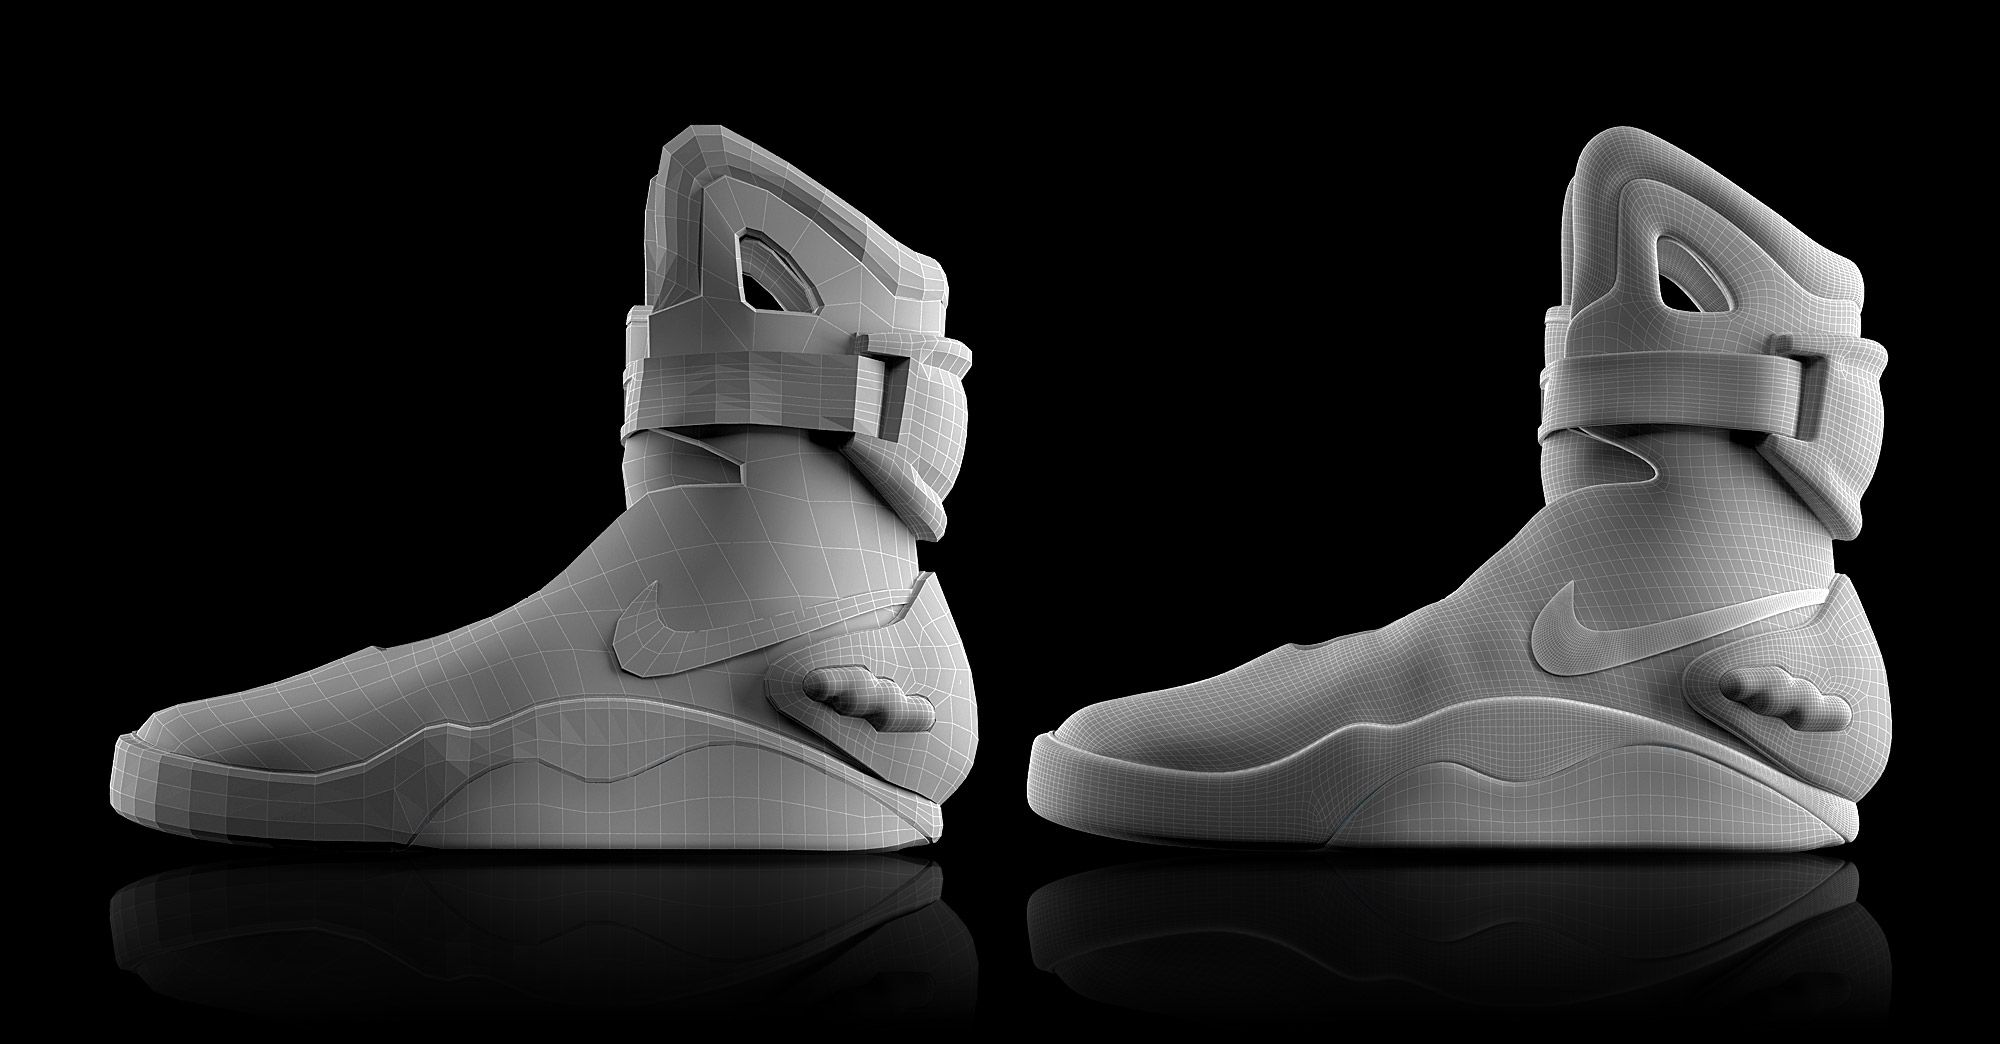 black nike mags | Peninsula Conflict Resolution Center